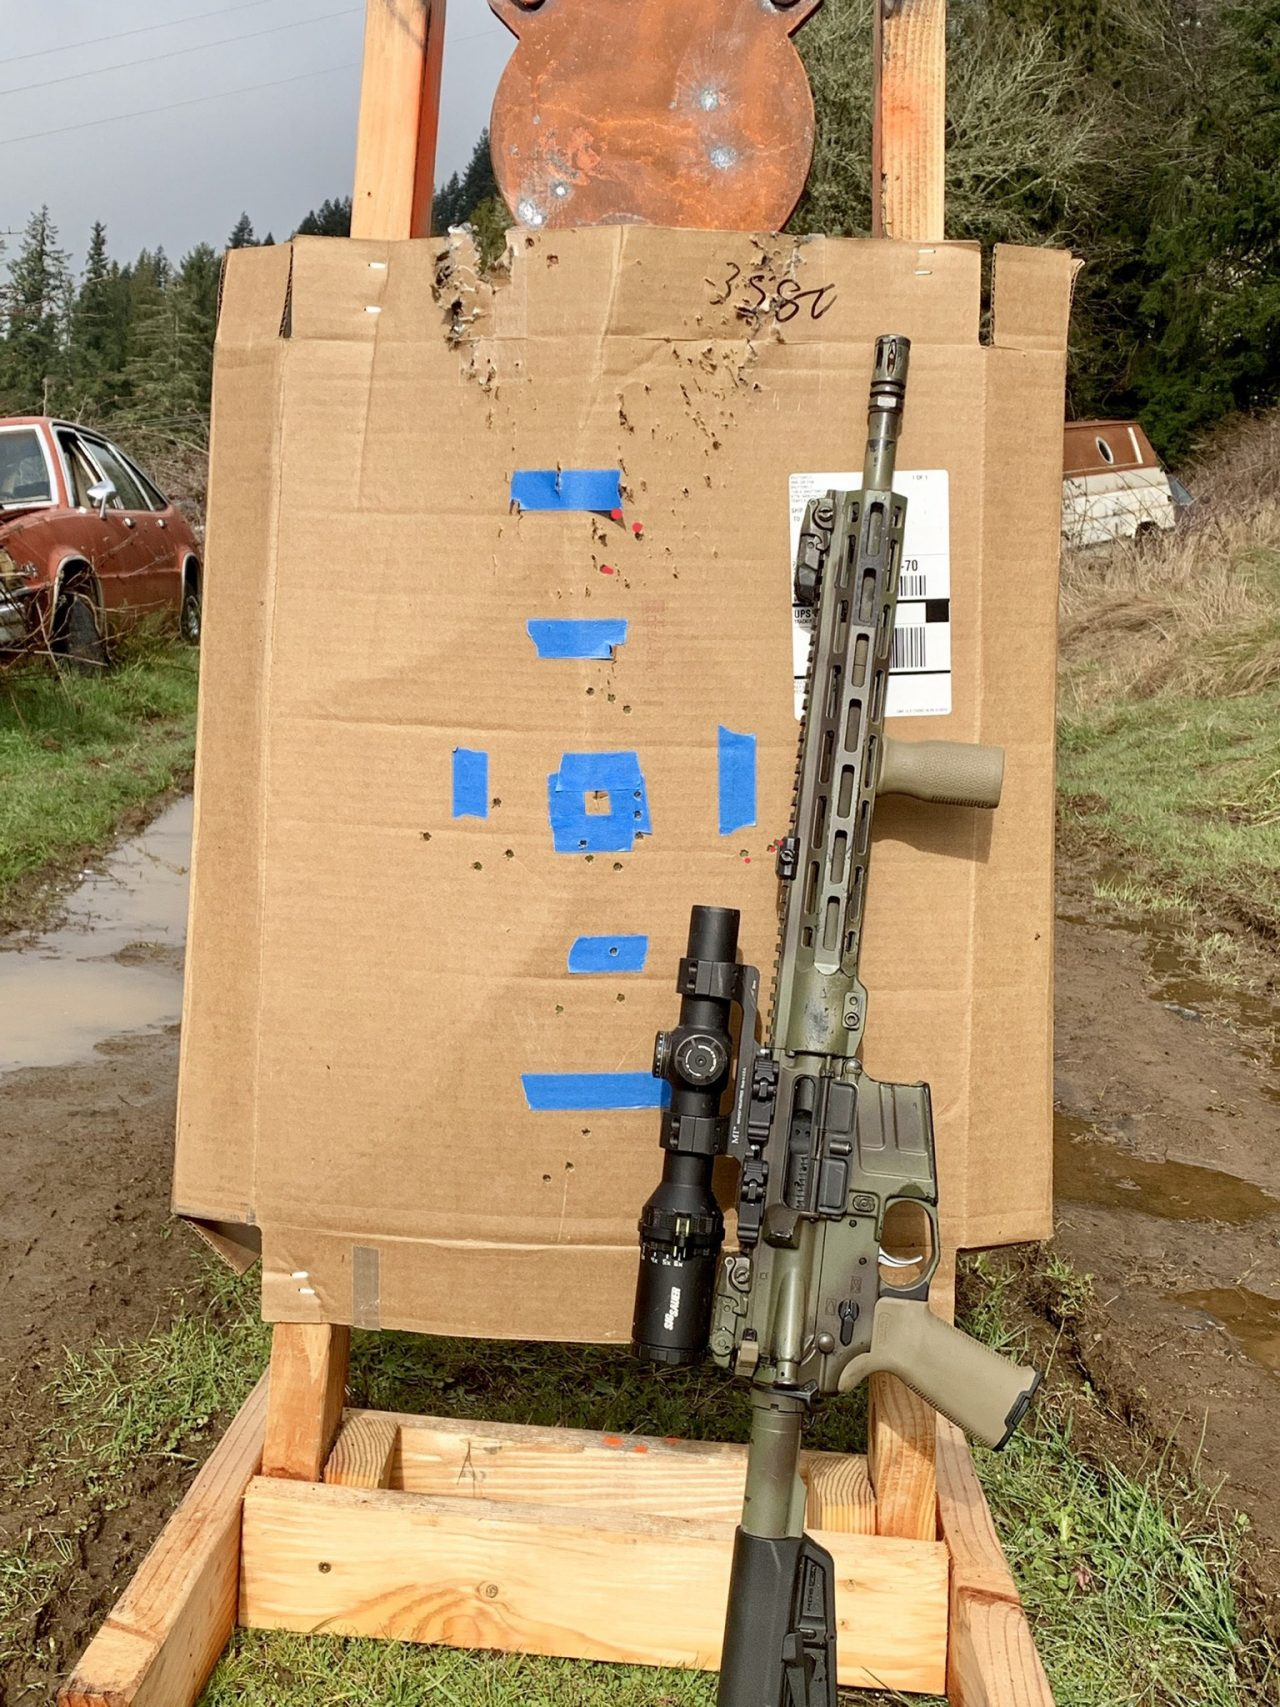 Tango6T tracking test I made the mistake of shooting my steel target before taking the picture. Sorry guys.